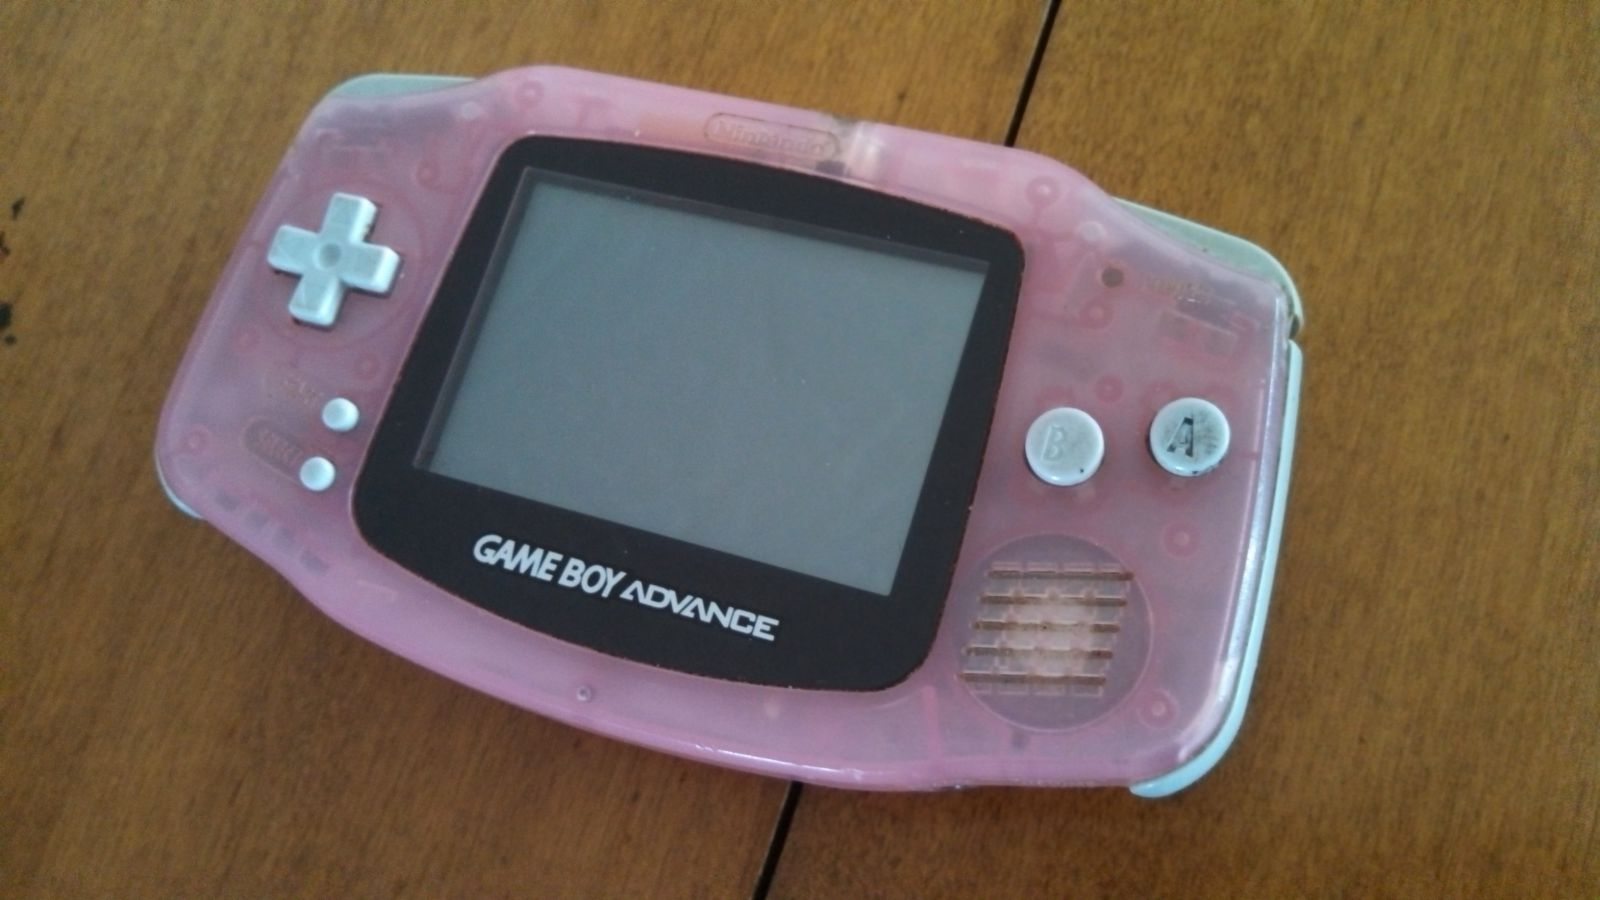 Gameboy Advance, before mod